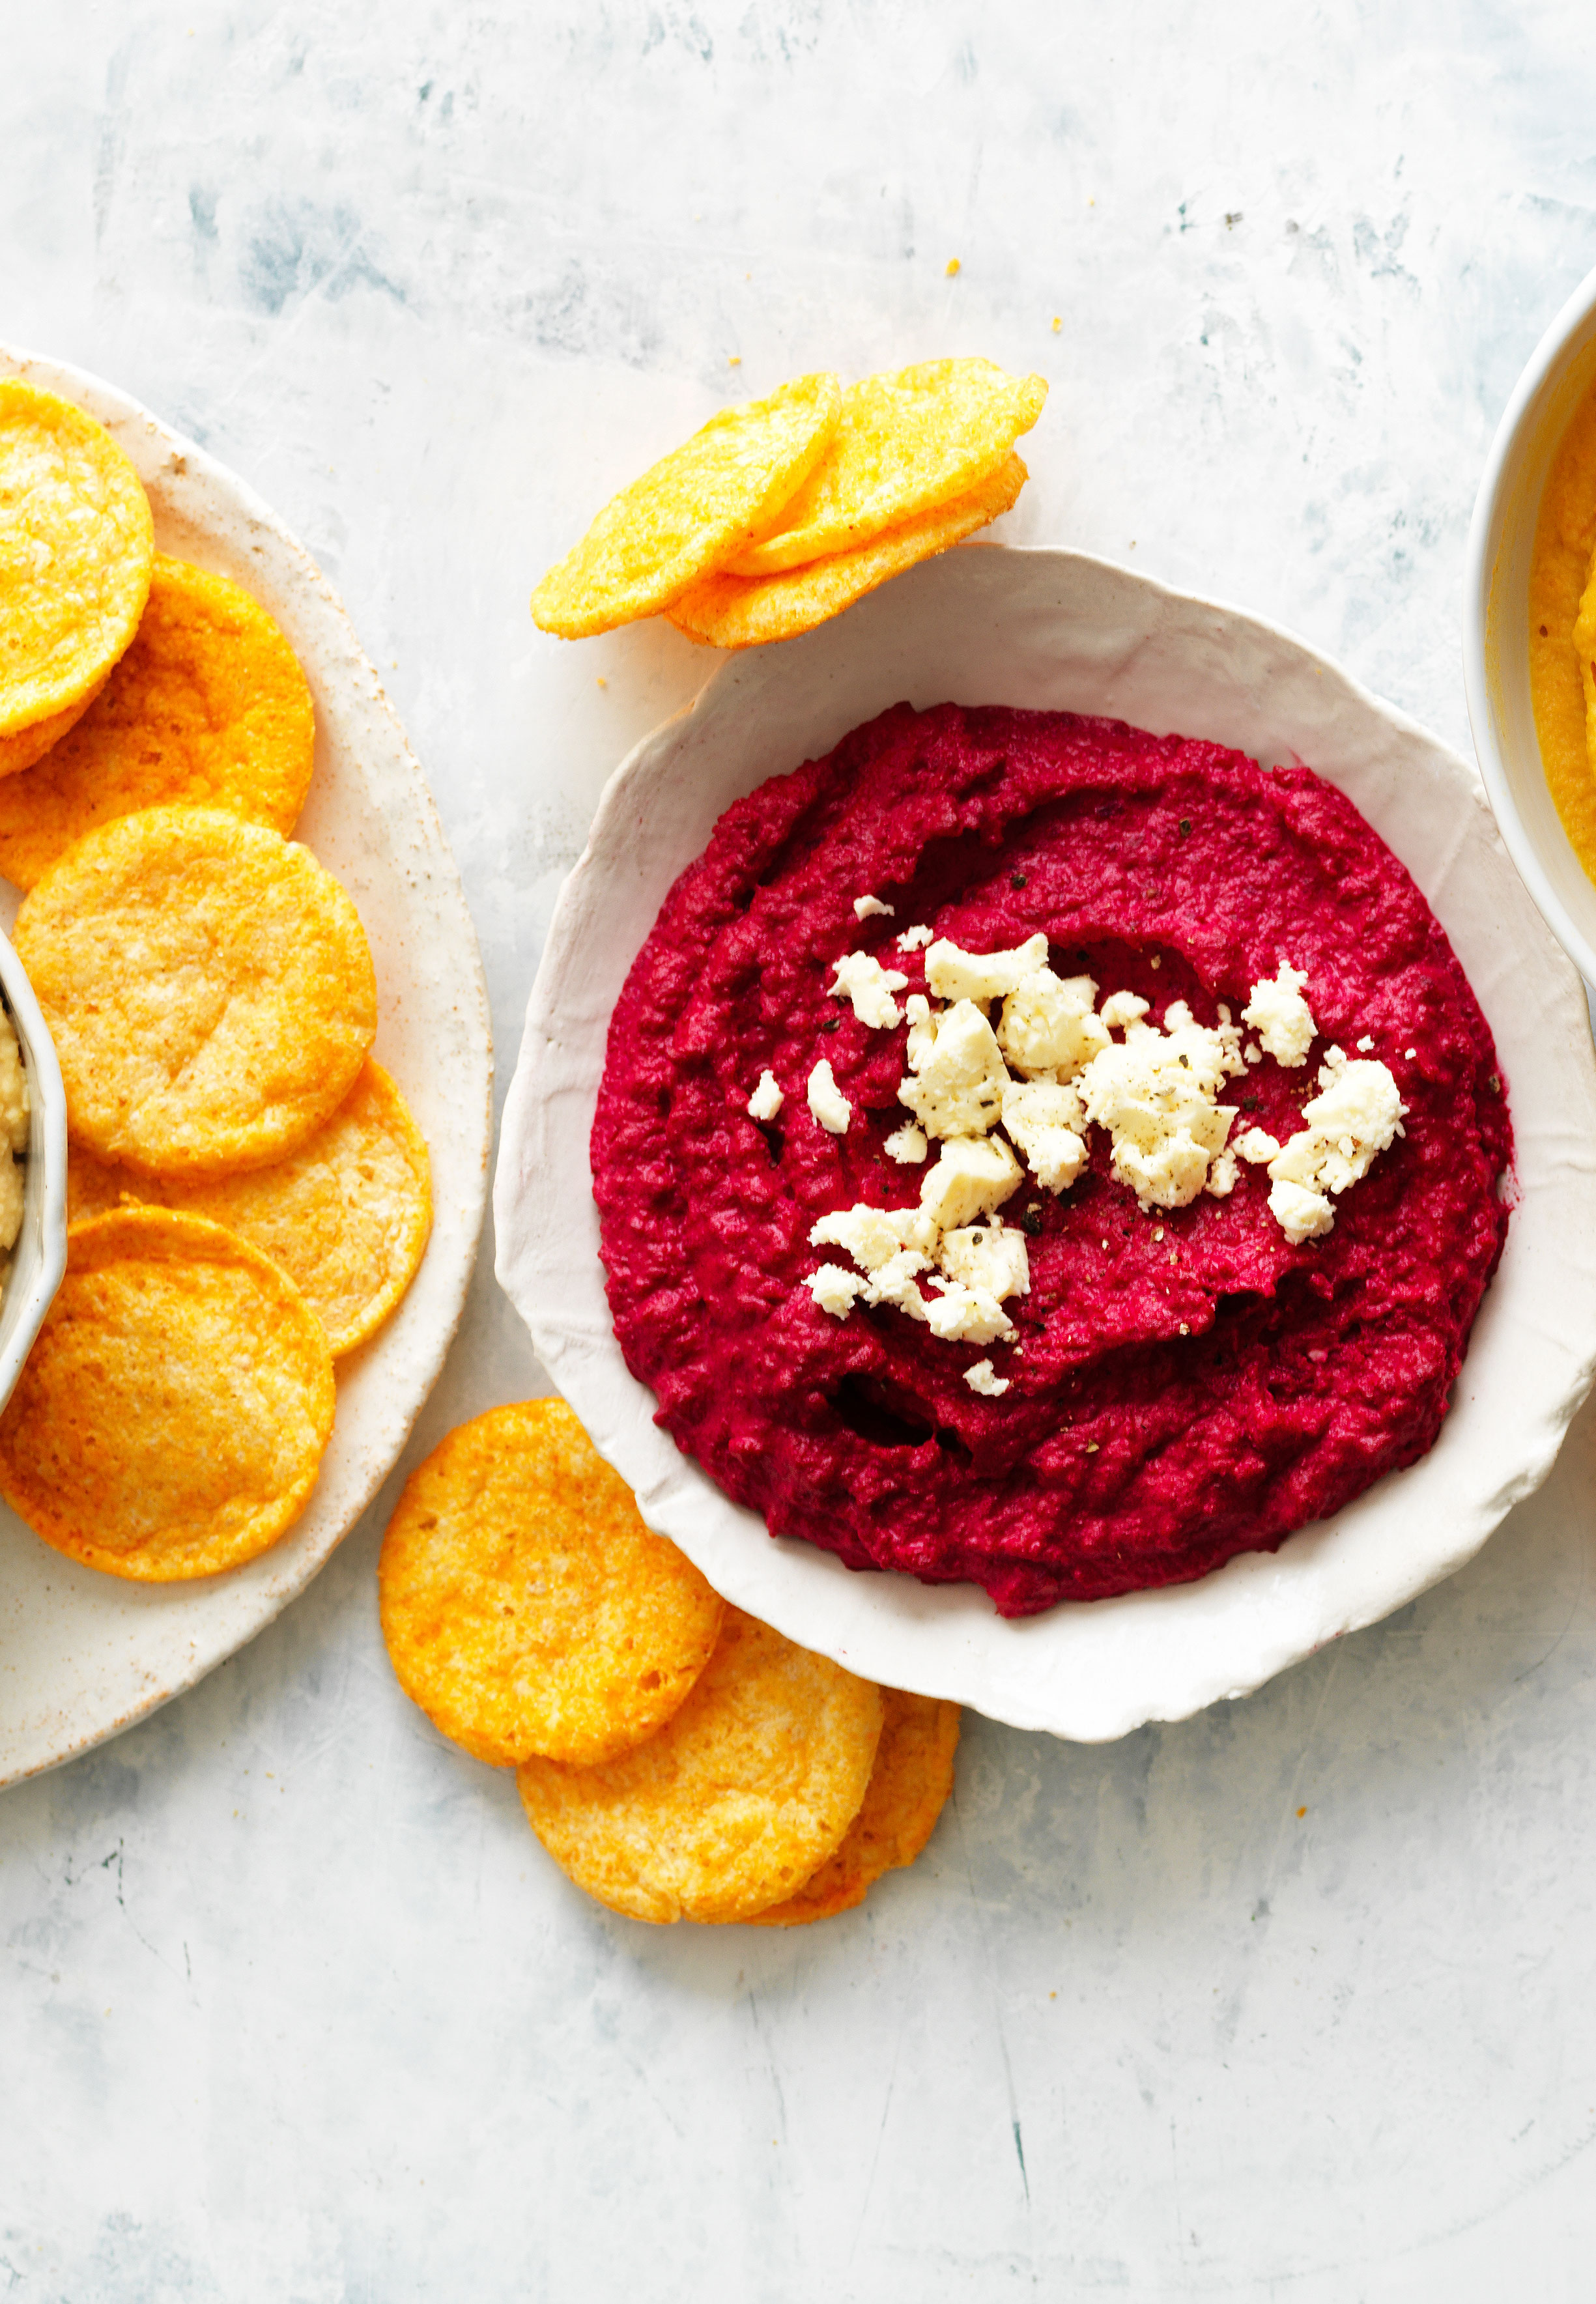 This colourful and easy beetroot hummus can be enjoyed for a easy appetiser or snack and goes perfectly with crunchy corn chips.